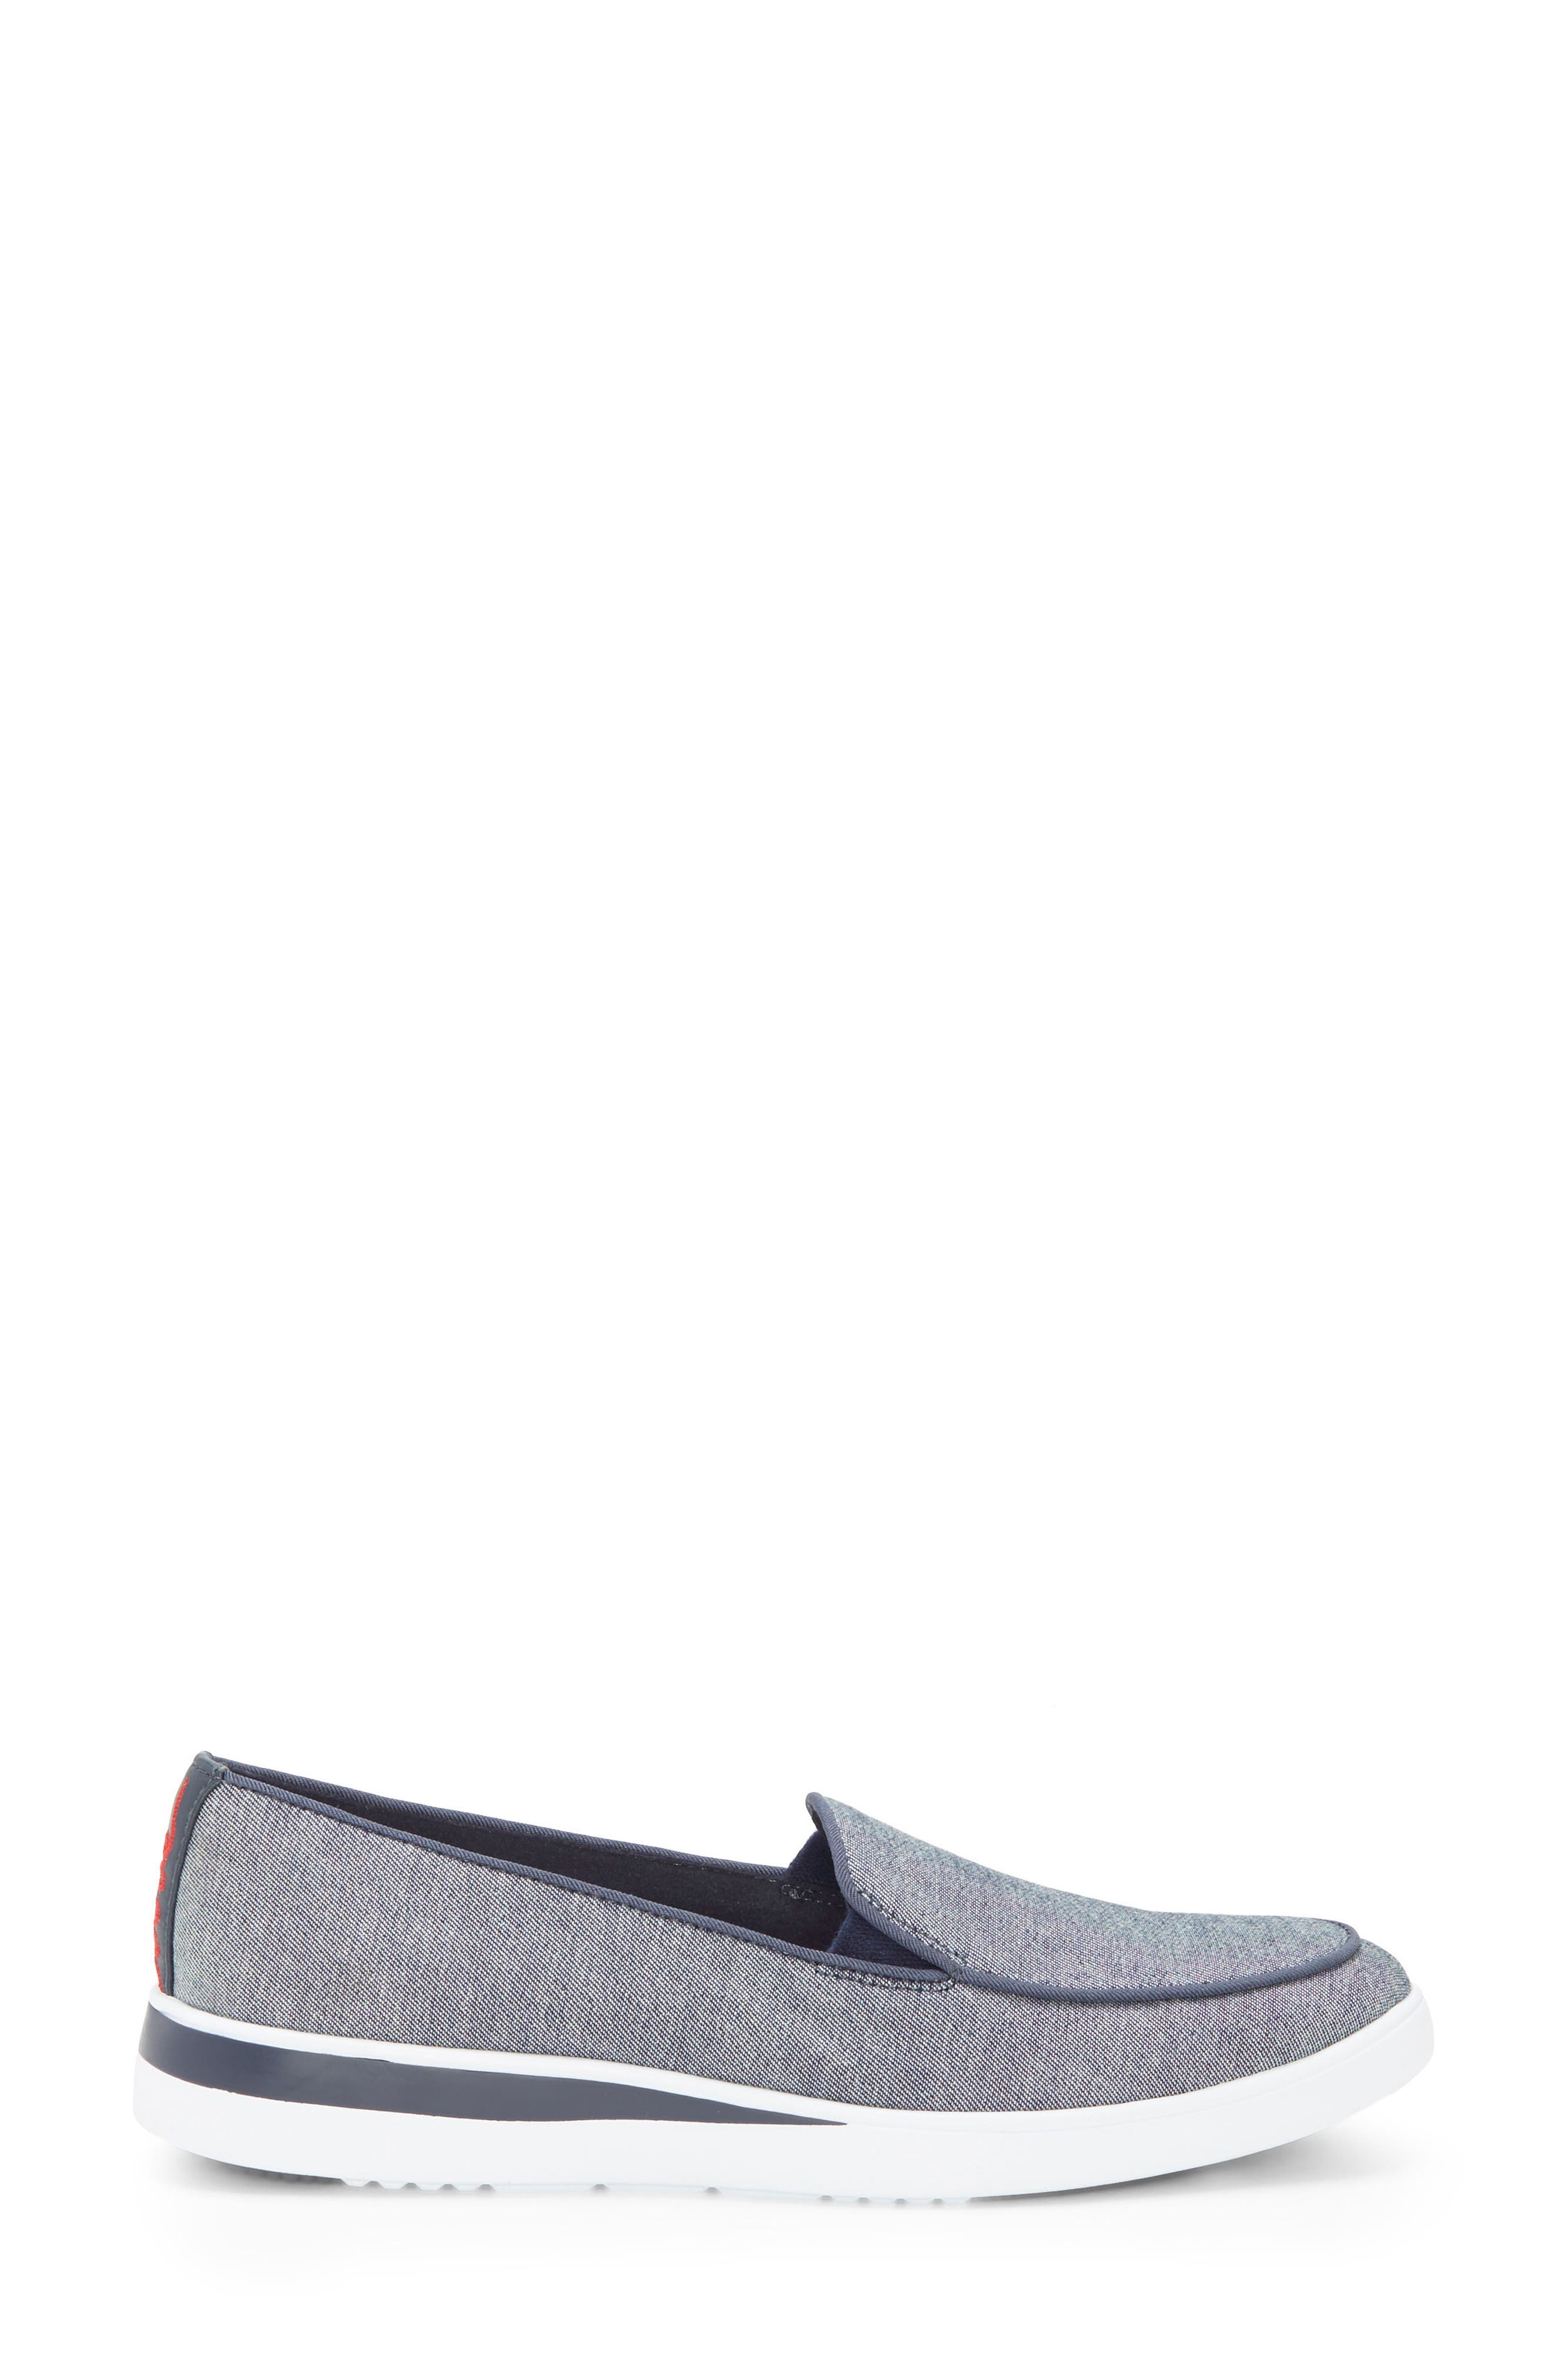 Antona Slip-On Sneaker,                             Alternate thumbnail 3, color,                             Blue Fabric